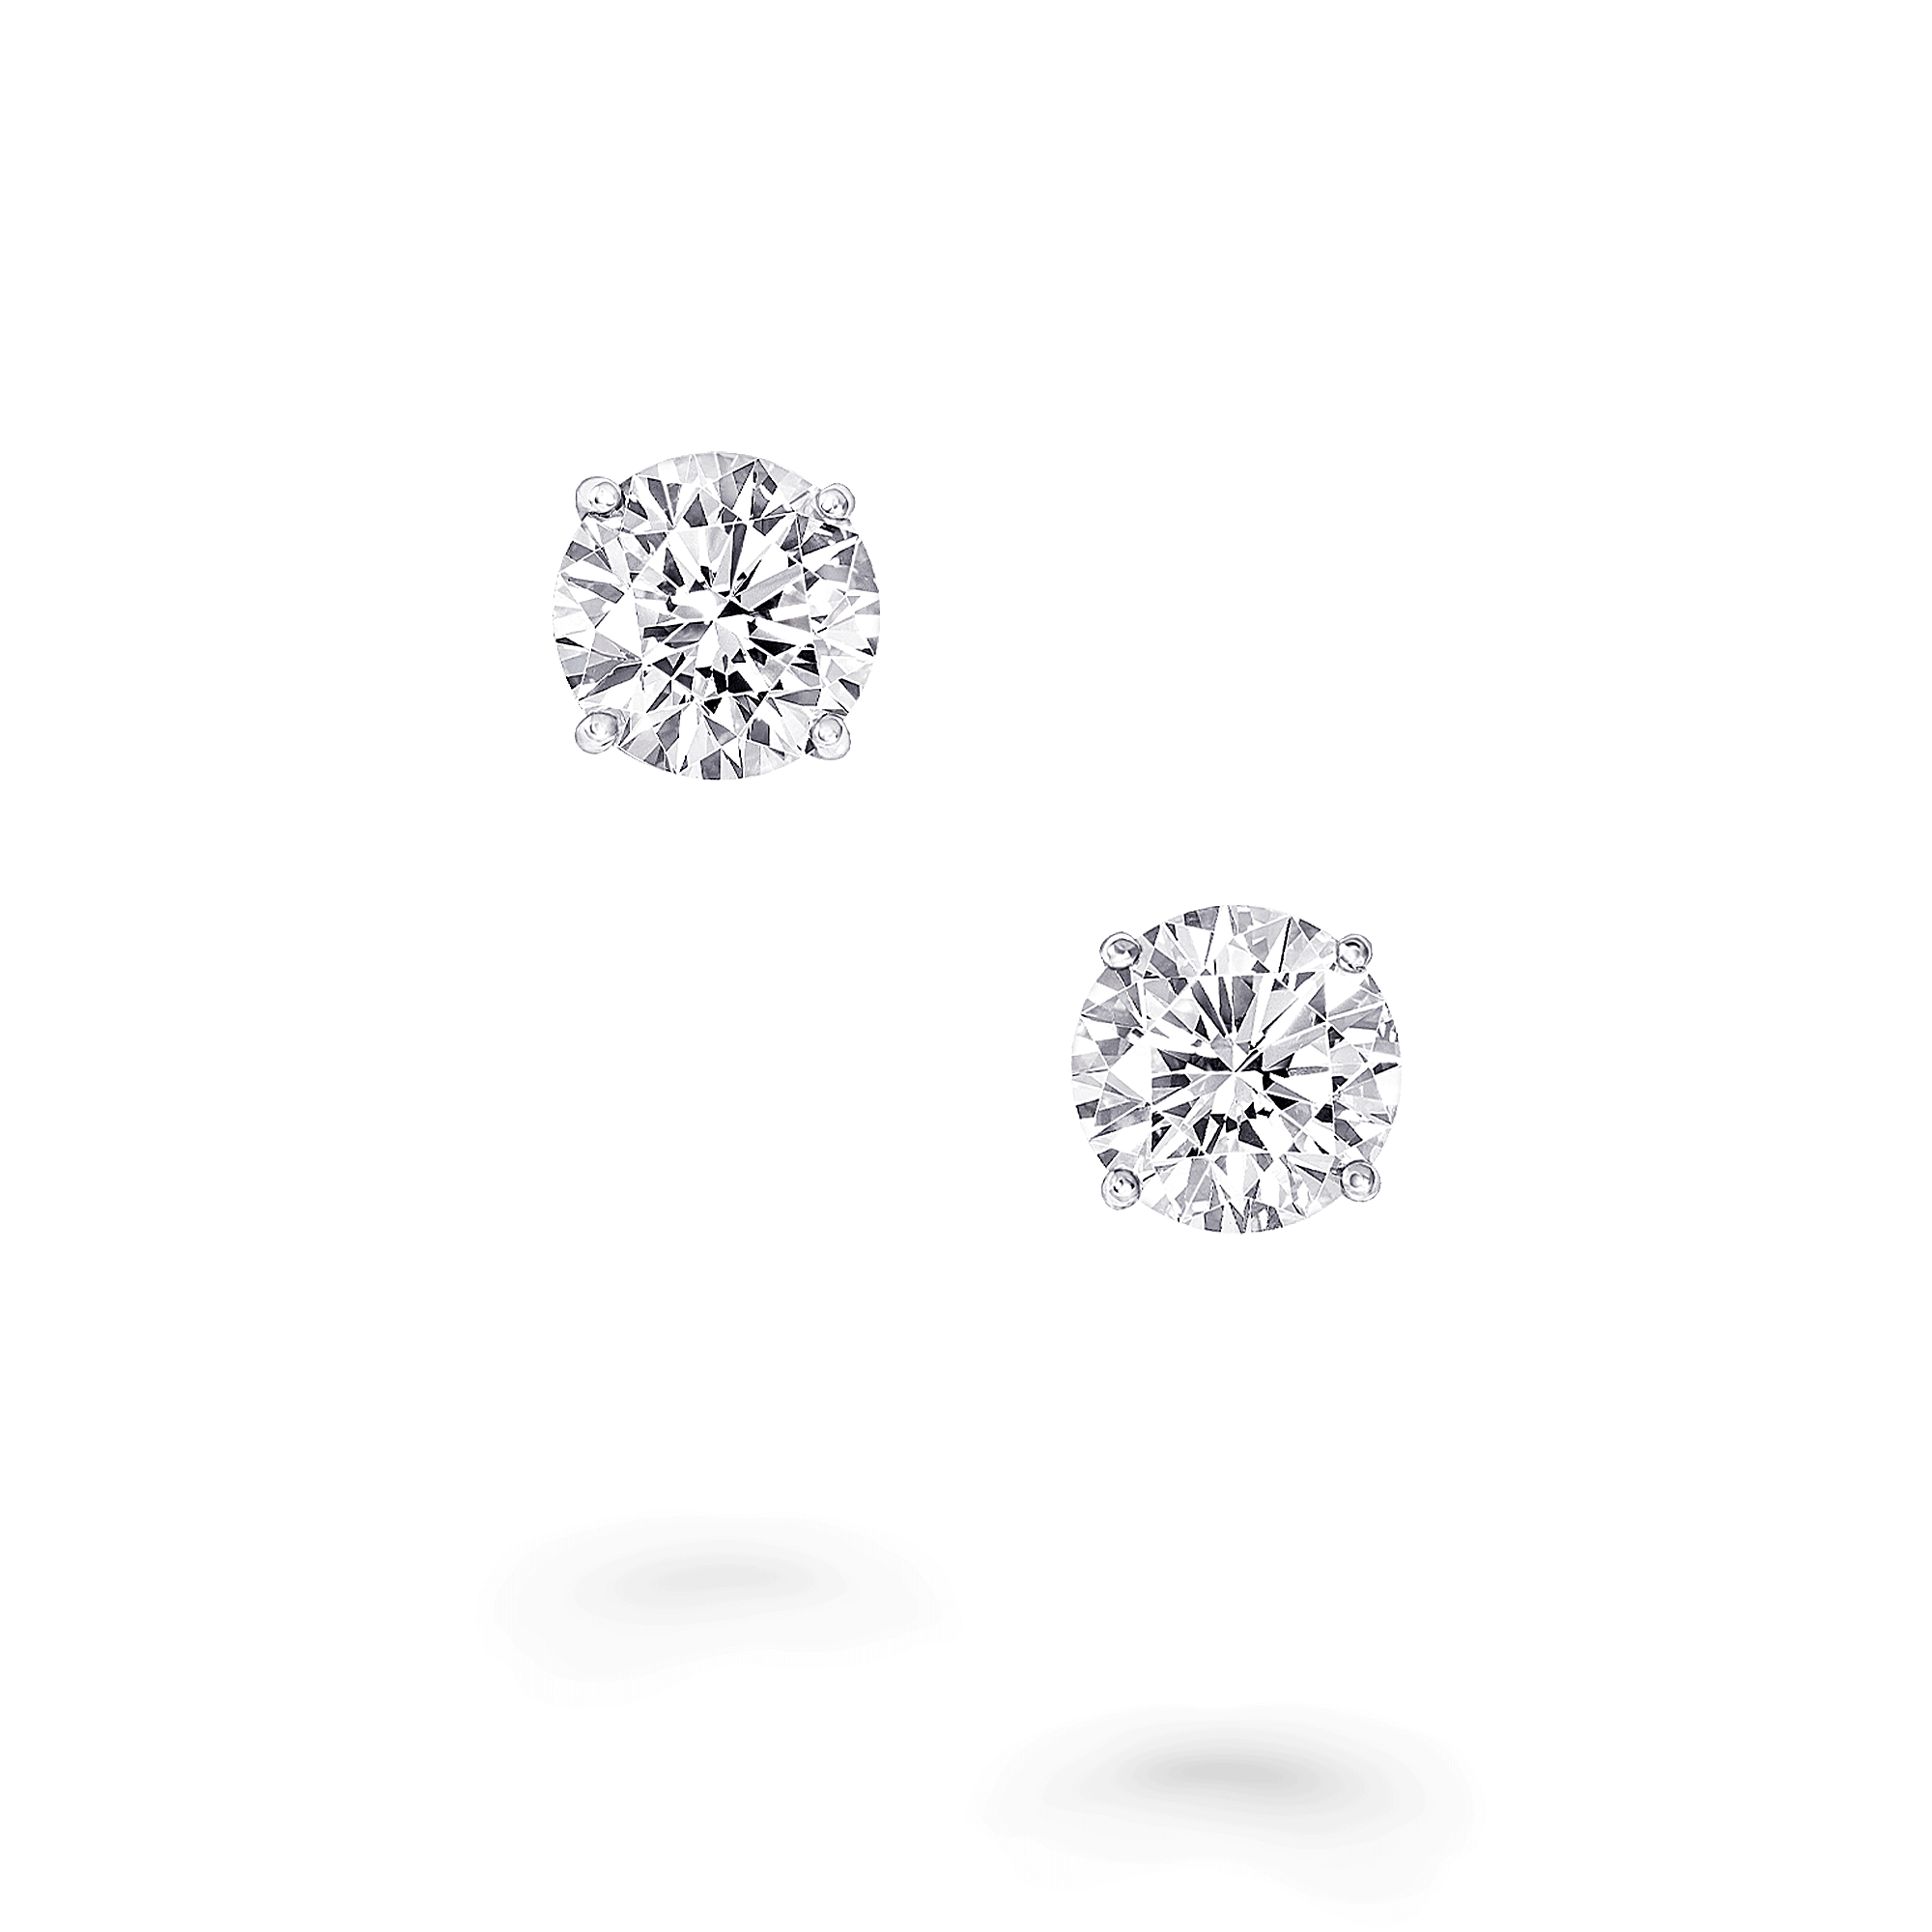 Earrings Round Diamond Stud